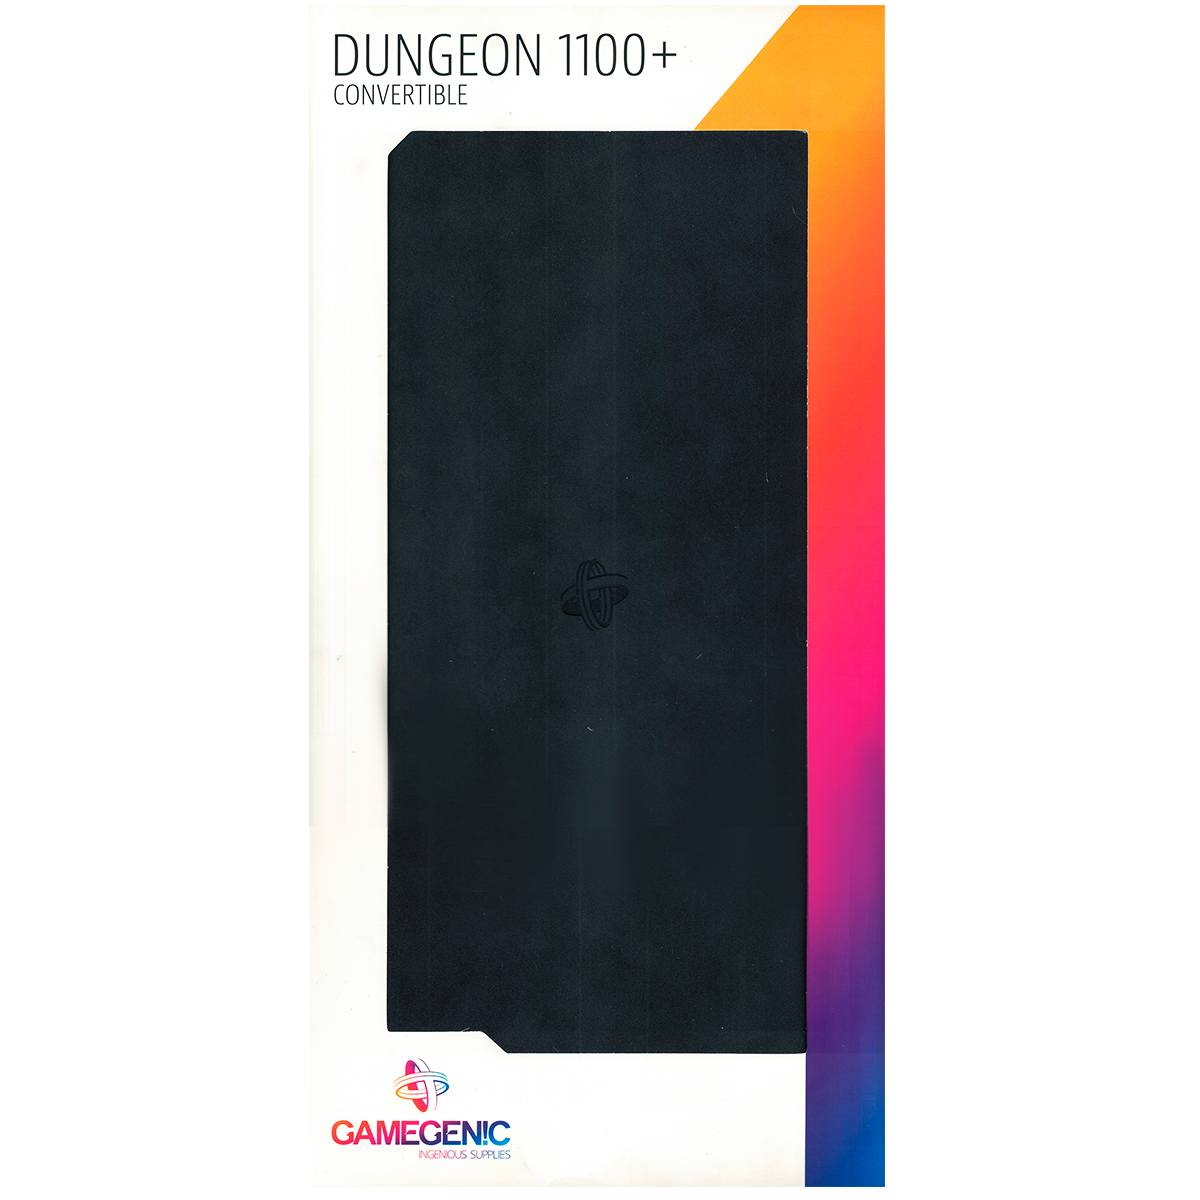 Deck Box Dungeon 1100 + Convertible Gamegenic